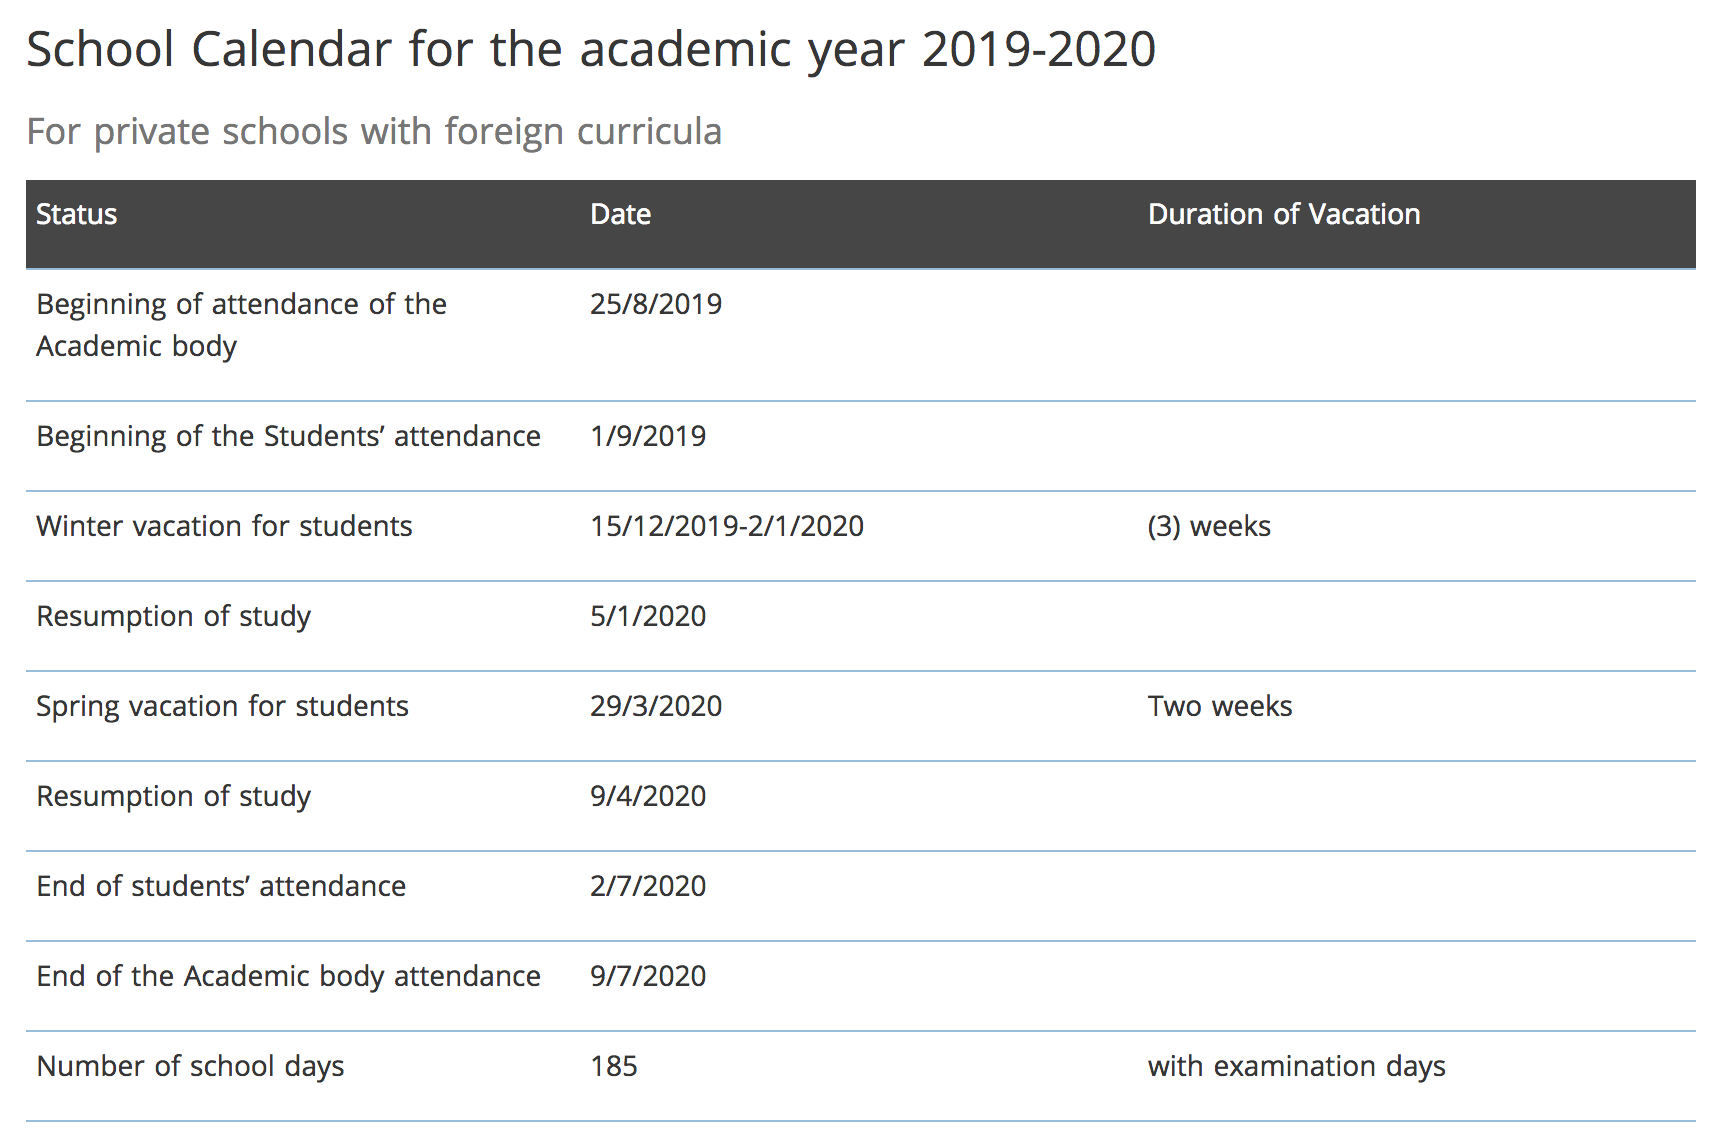 Plan Your Holidays: Here's The Uae School Calendar For Next 3 Years pertaining to U Of M School Year 2019-2020